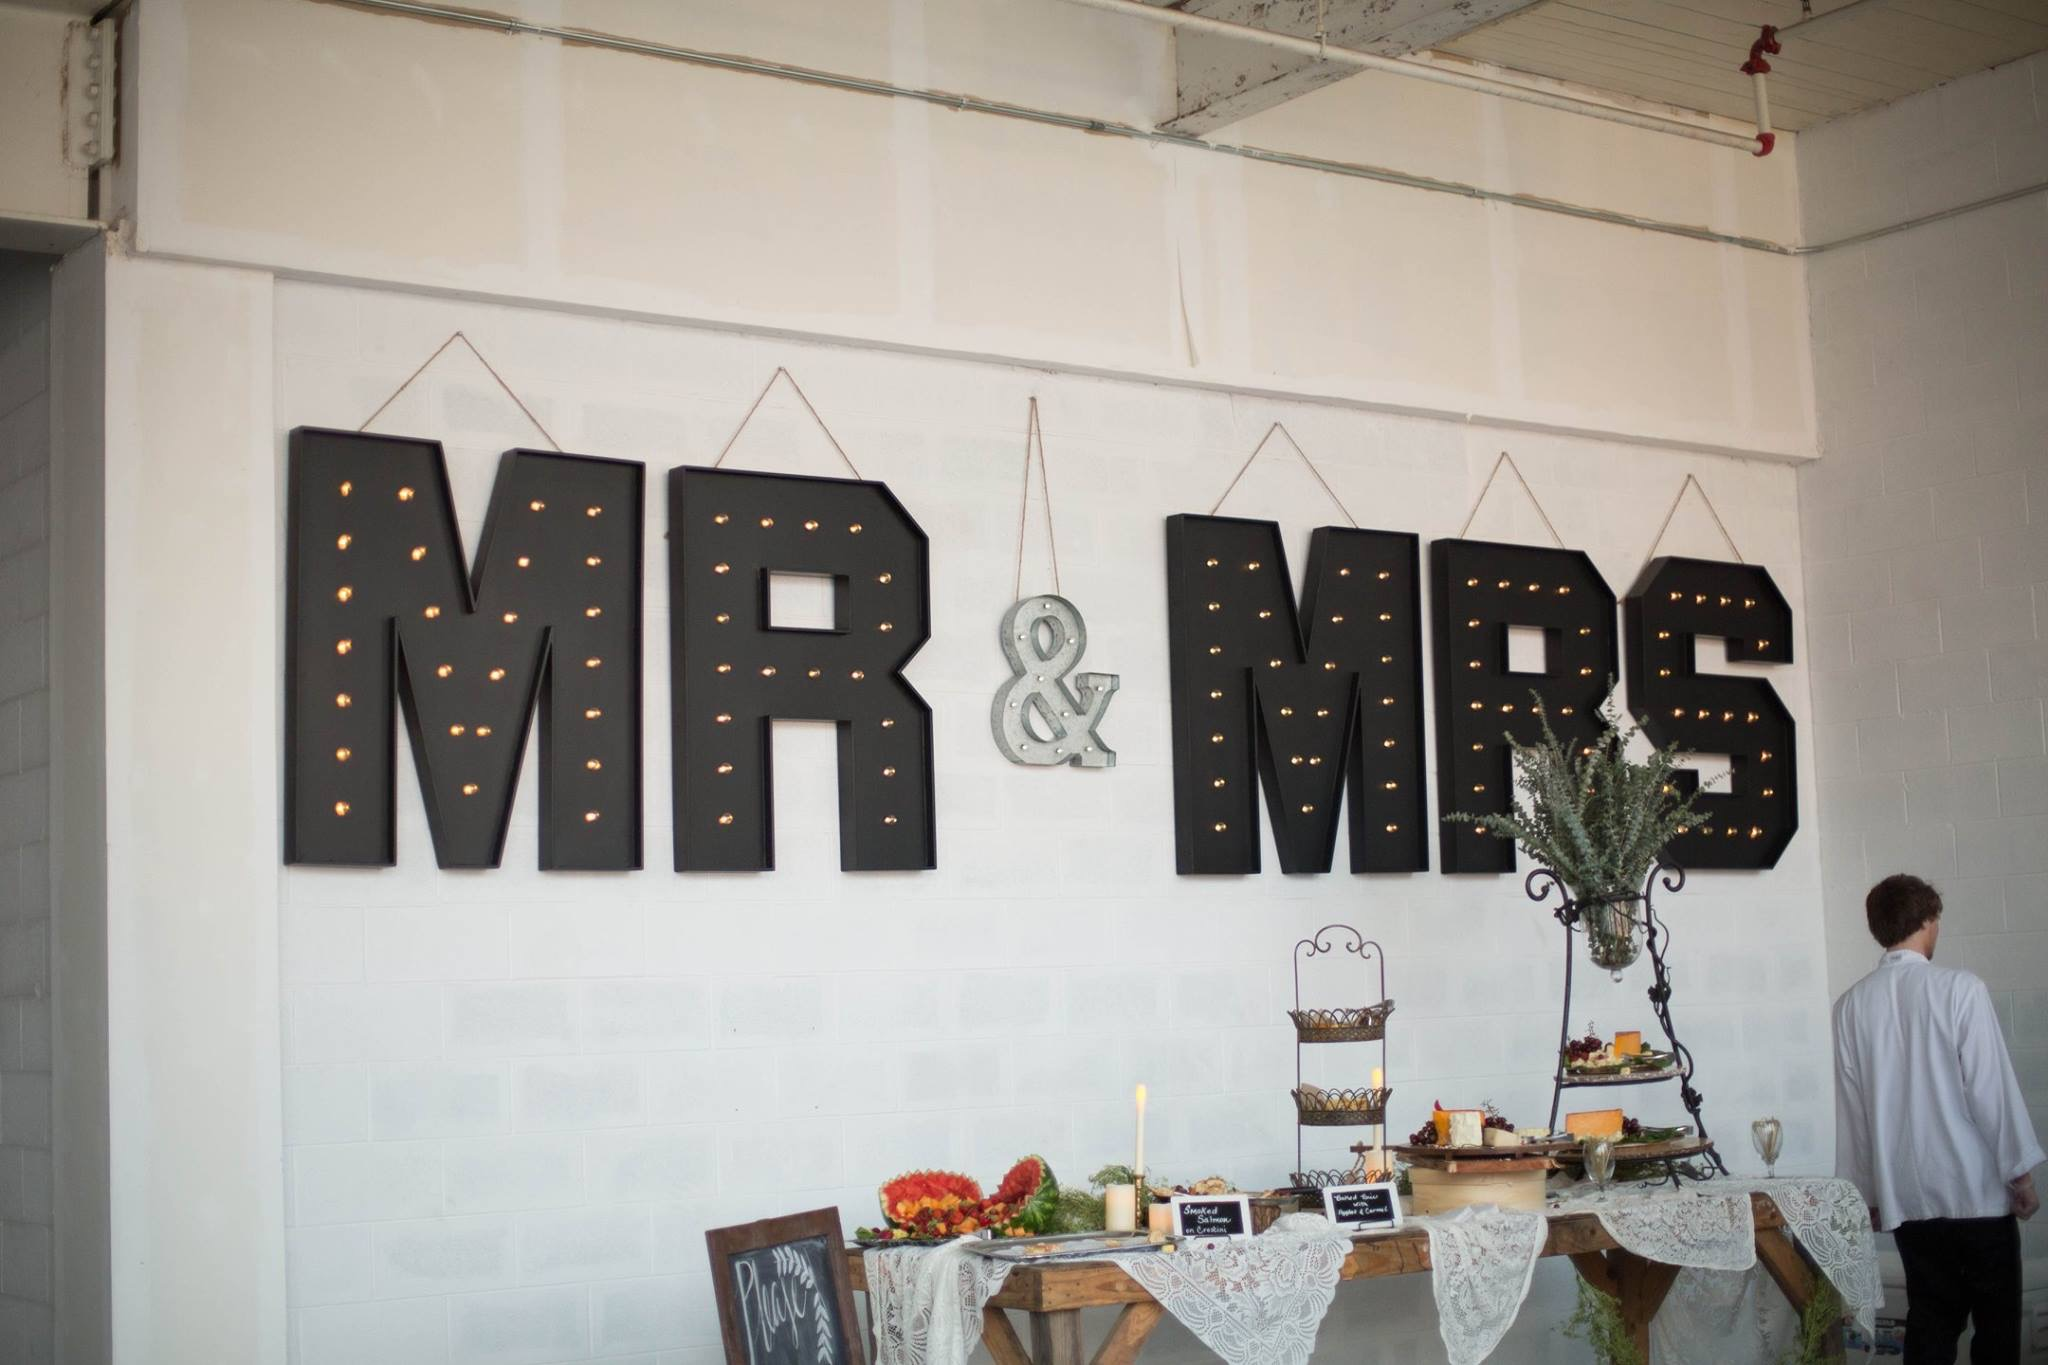 Mr&Mrs Marquee Letters